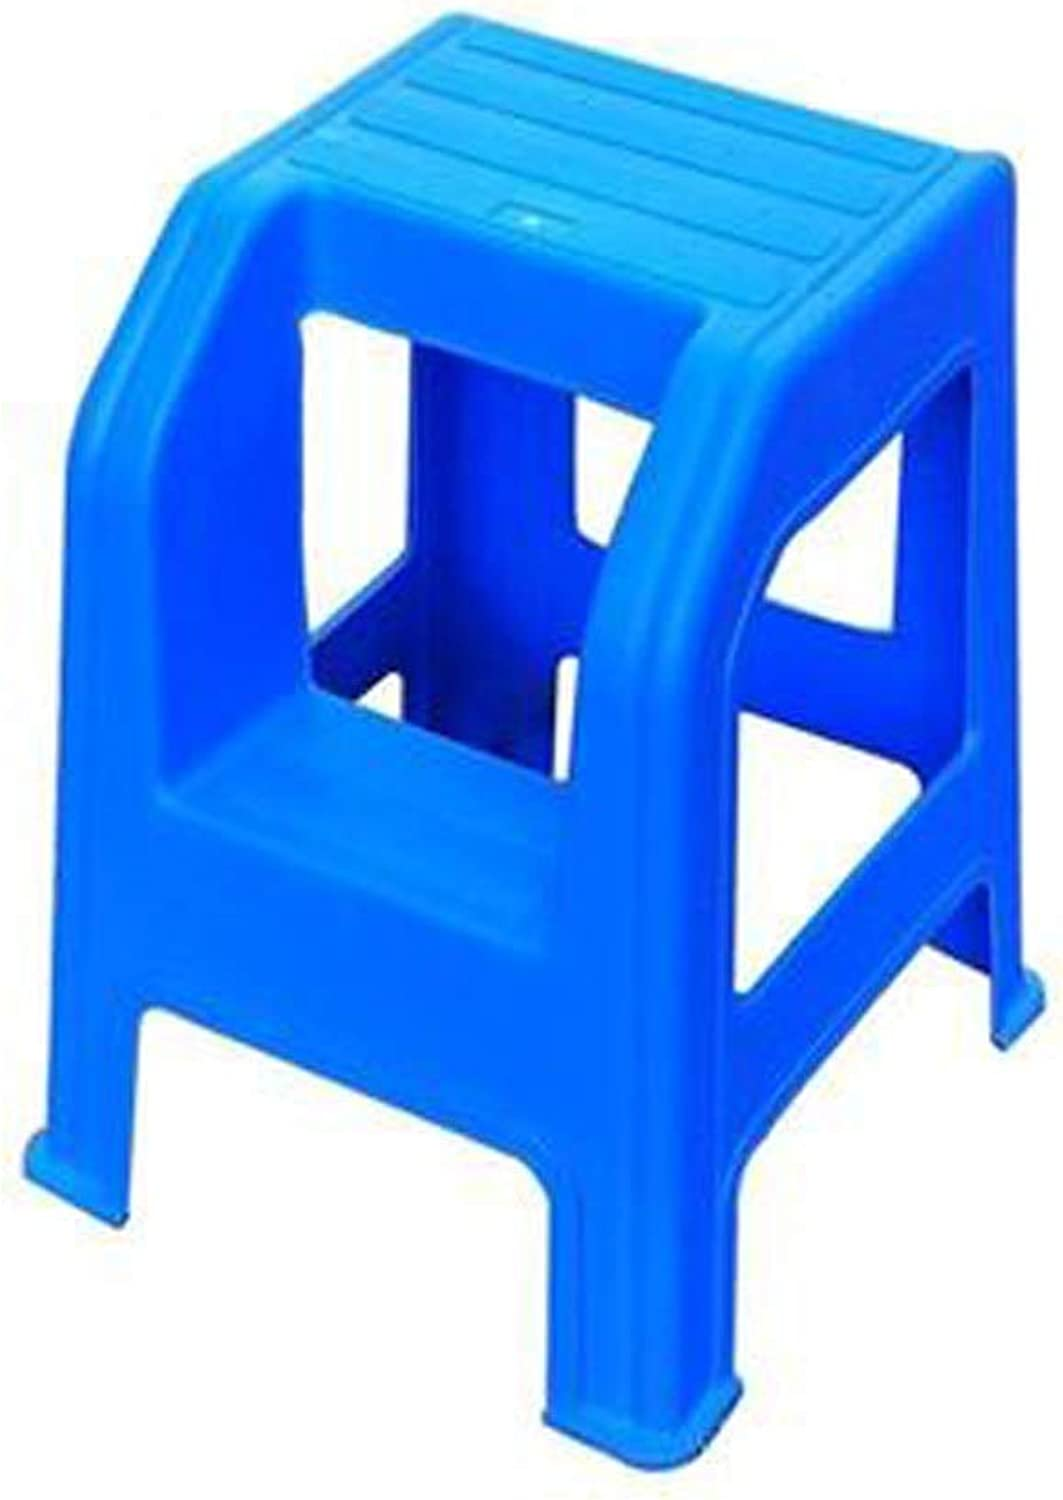 Camping Chair - Outdoor Portable Folding, Spring Summer Park Fishing Stool